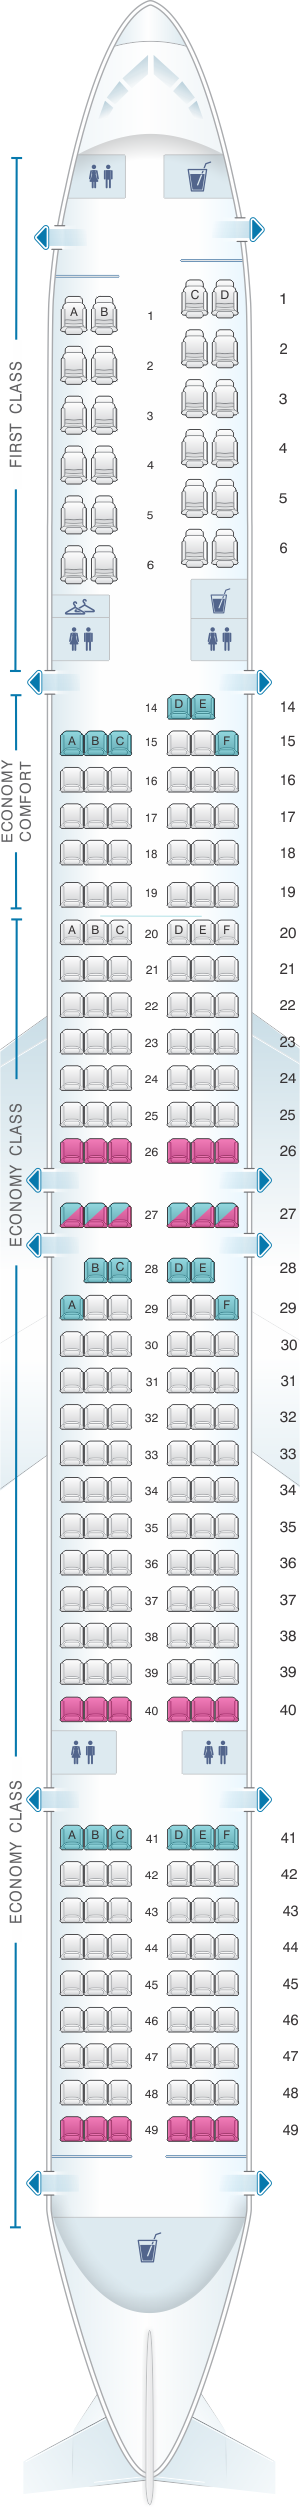 Seat map for Delta Air Lines Boeing B757 300 (75Y)